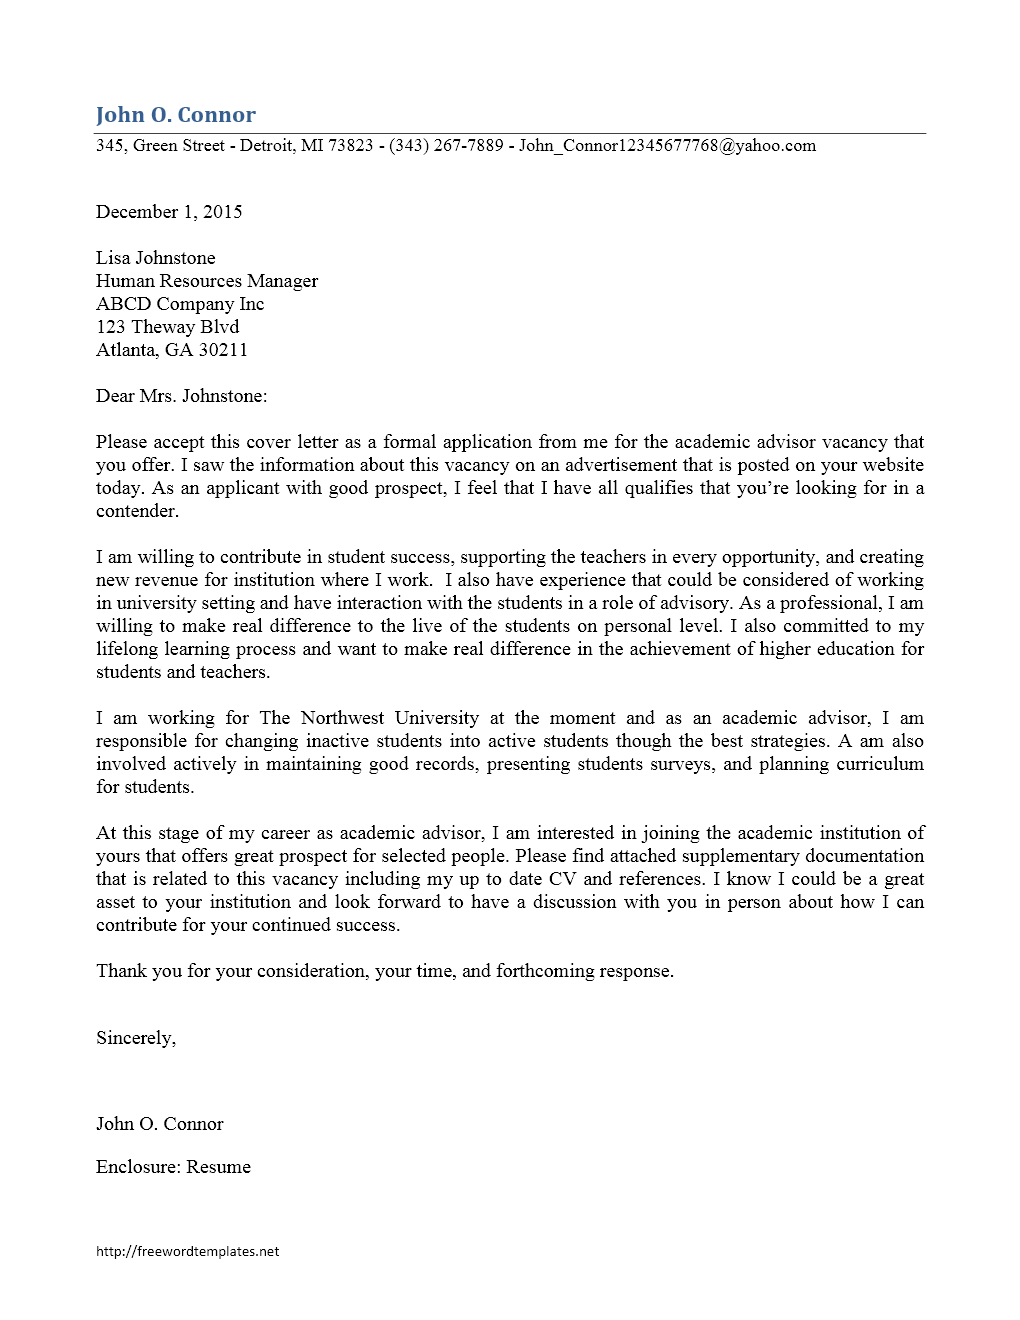 College admissions recruiter cover letter